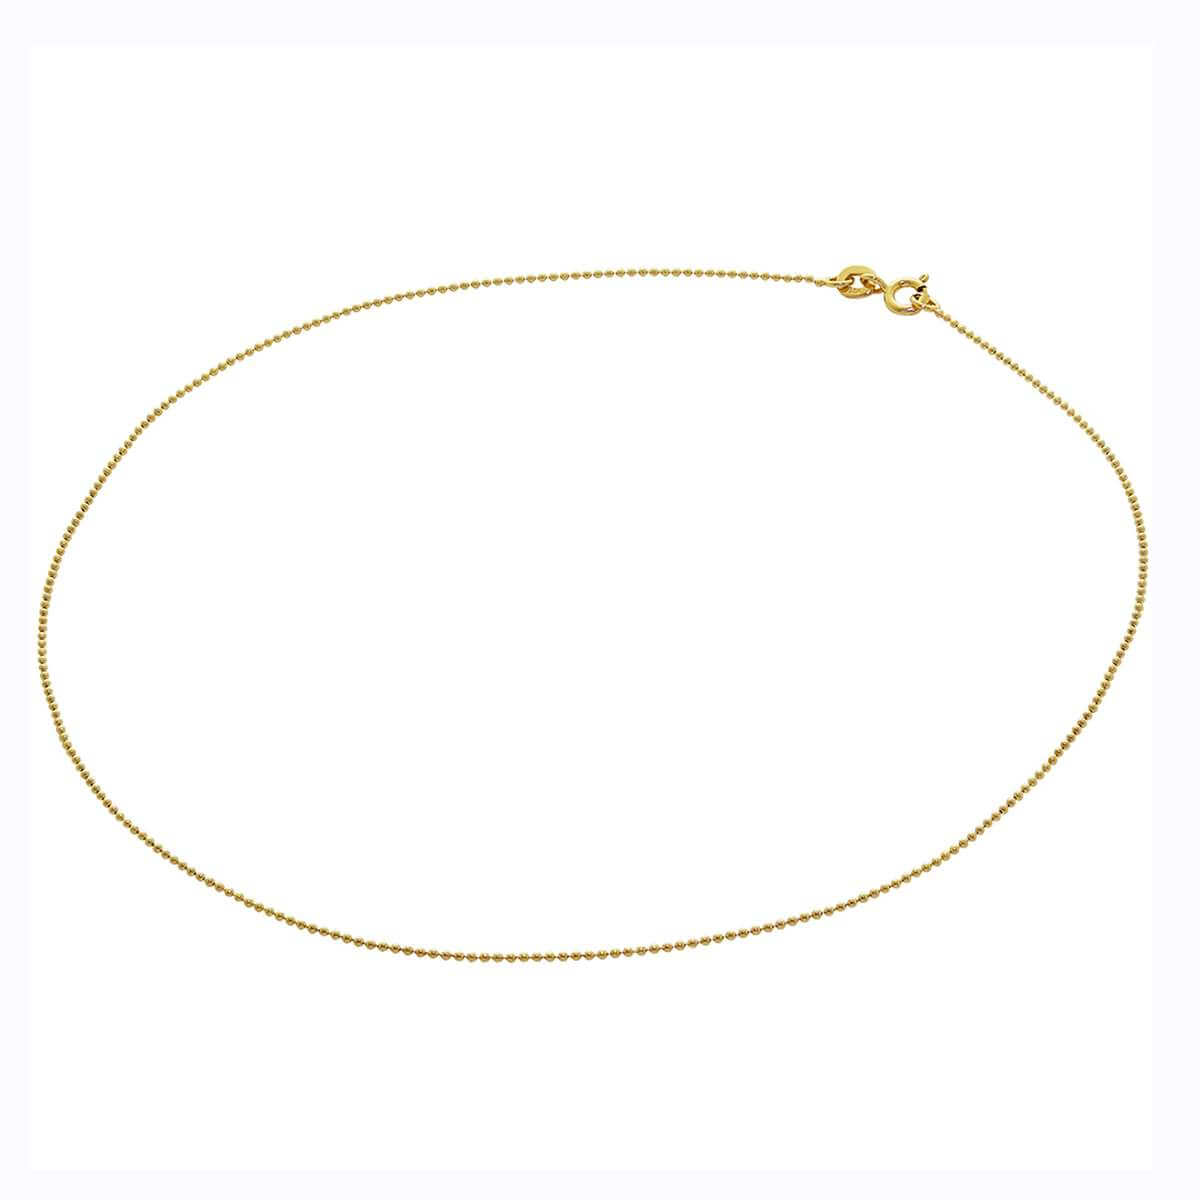 Gold Plated Sterling Silver 1mm Bead Chain 14 Inches